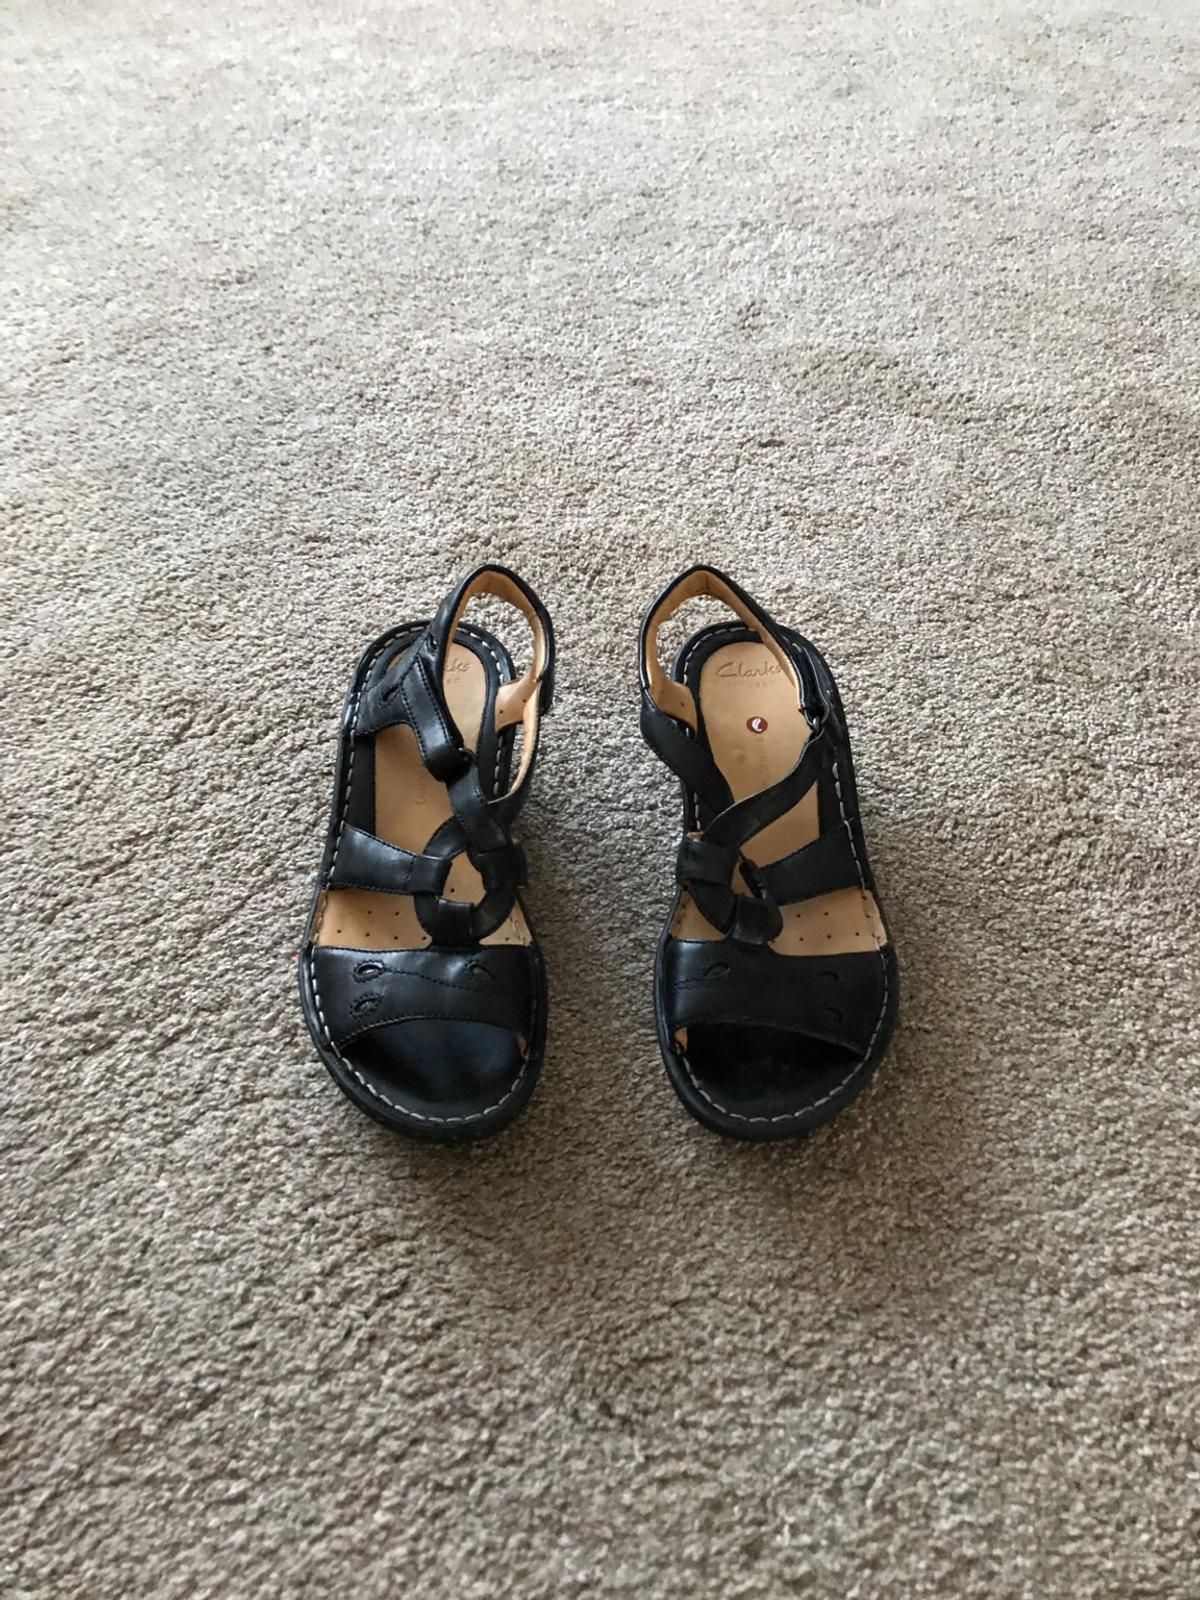 f1ee7061875a9 Clarks black summer sandals in E6 London for £30.00 for sale - Shpock